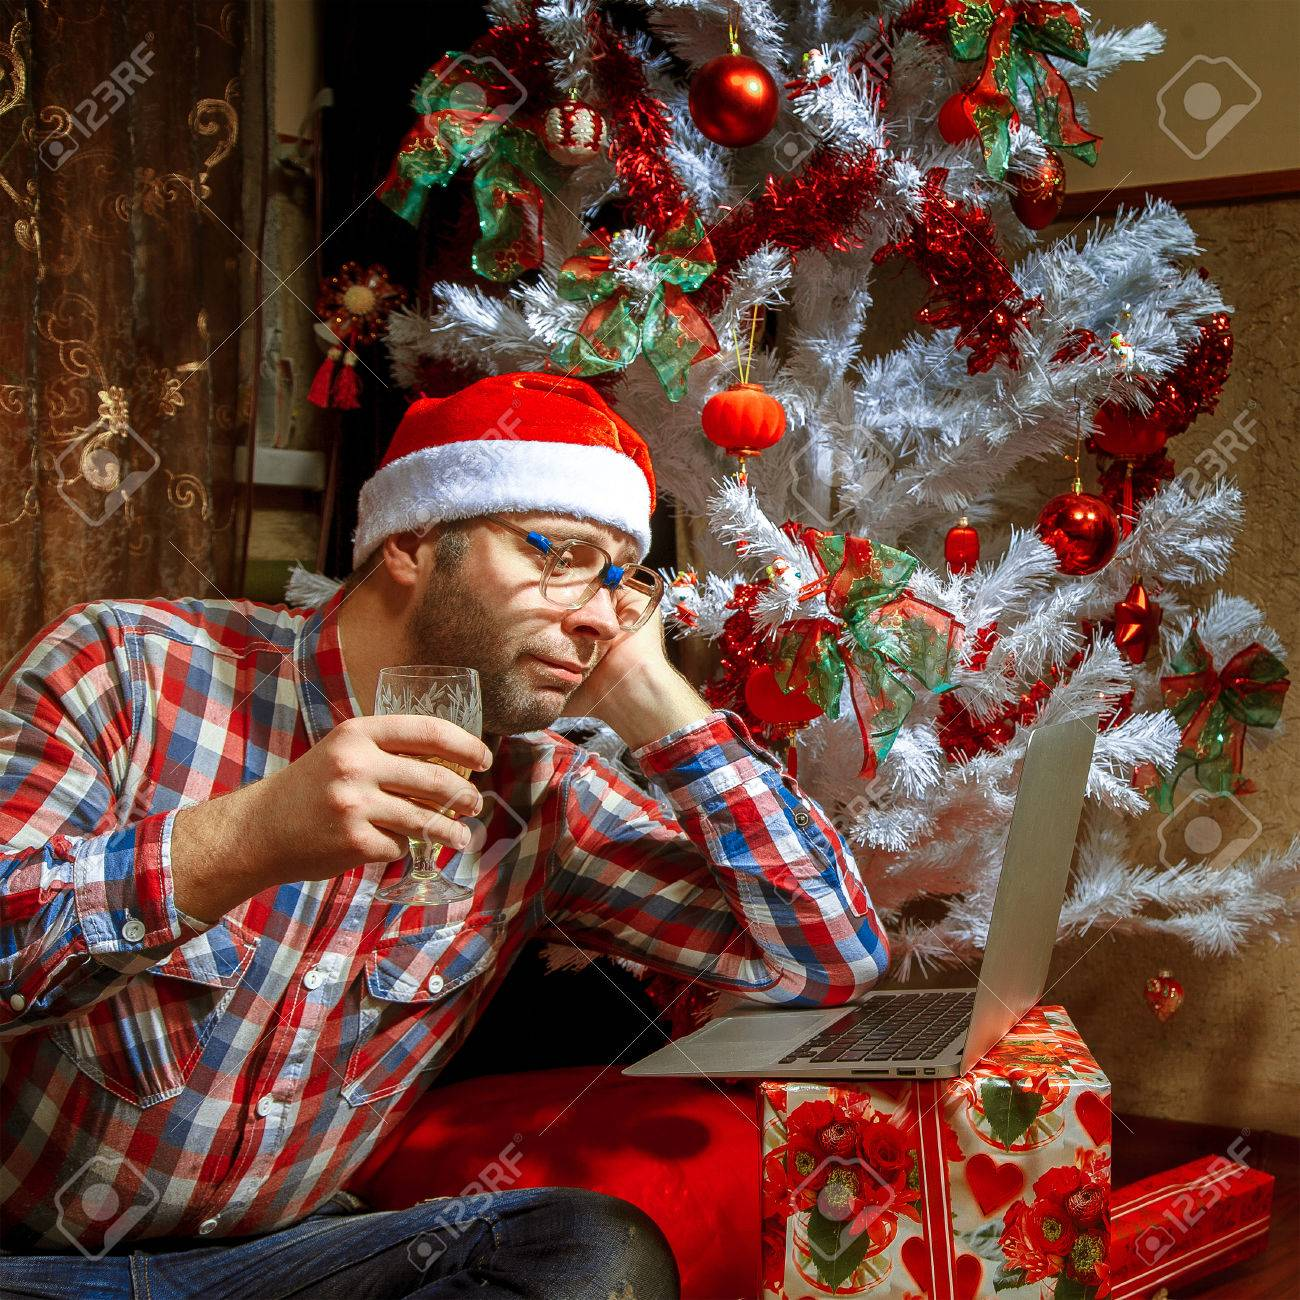 Lonely Christmas.Lonely Christmas Nerd With A Laptop Under The Tree